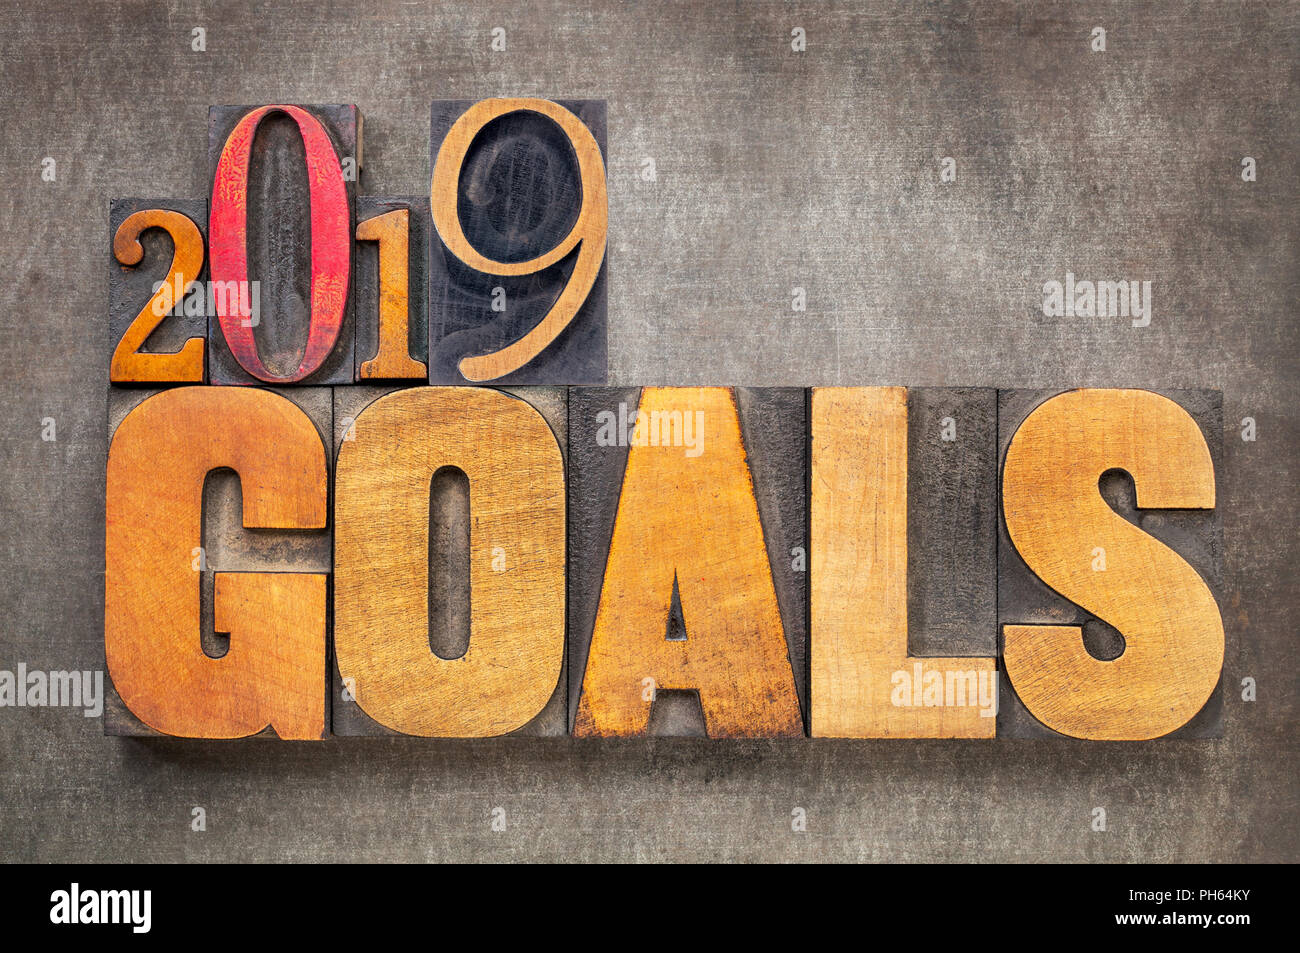 2019 New Years Resolutions 2019 goals   New Year resolution concept   word abstract in